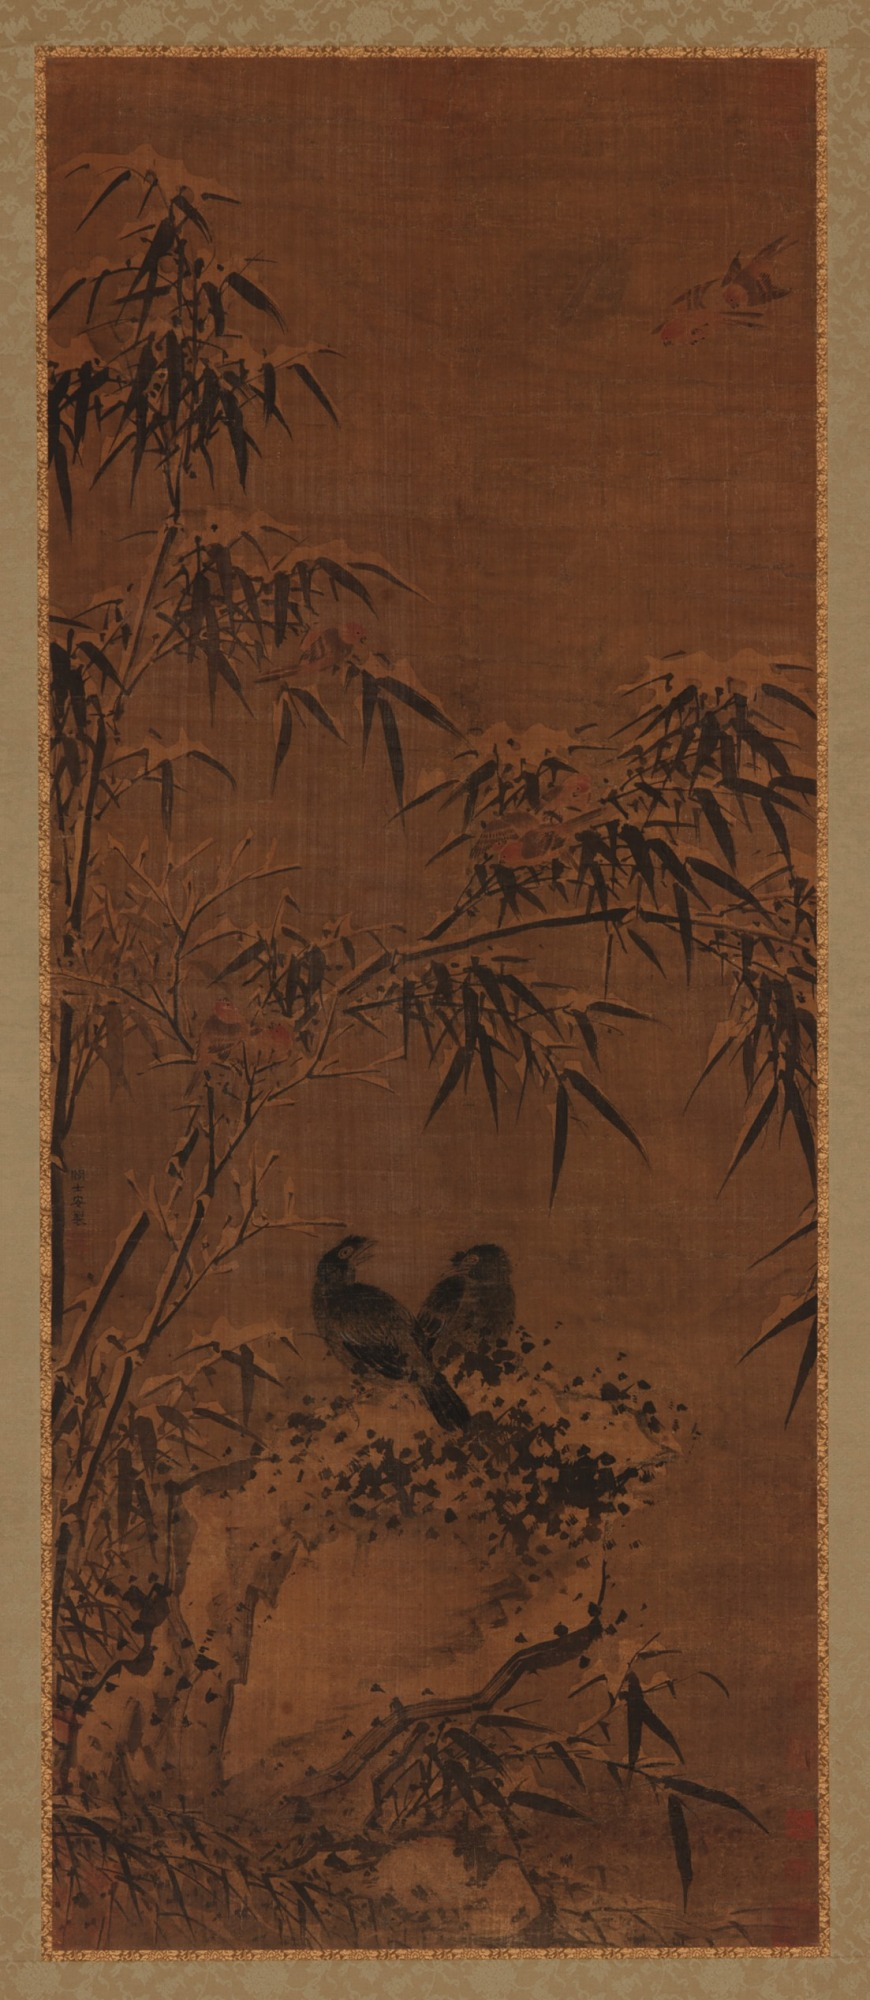 Bamboos and birds in winter